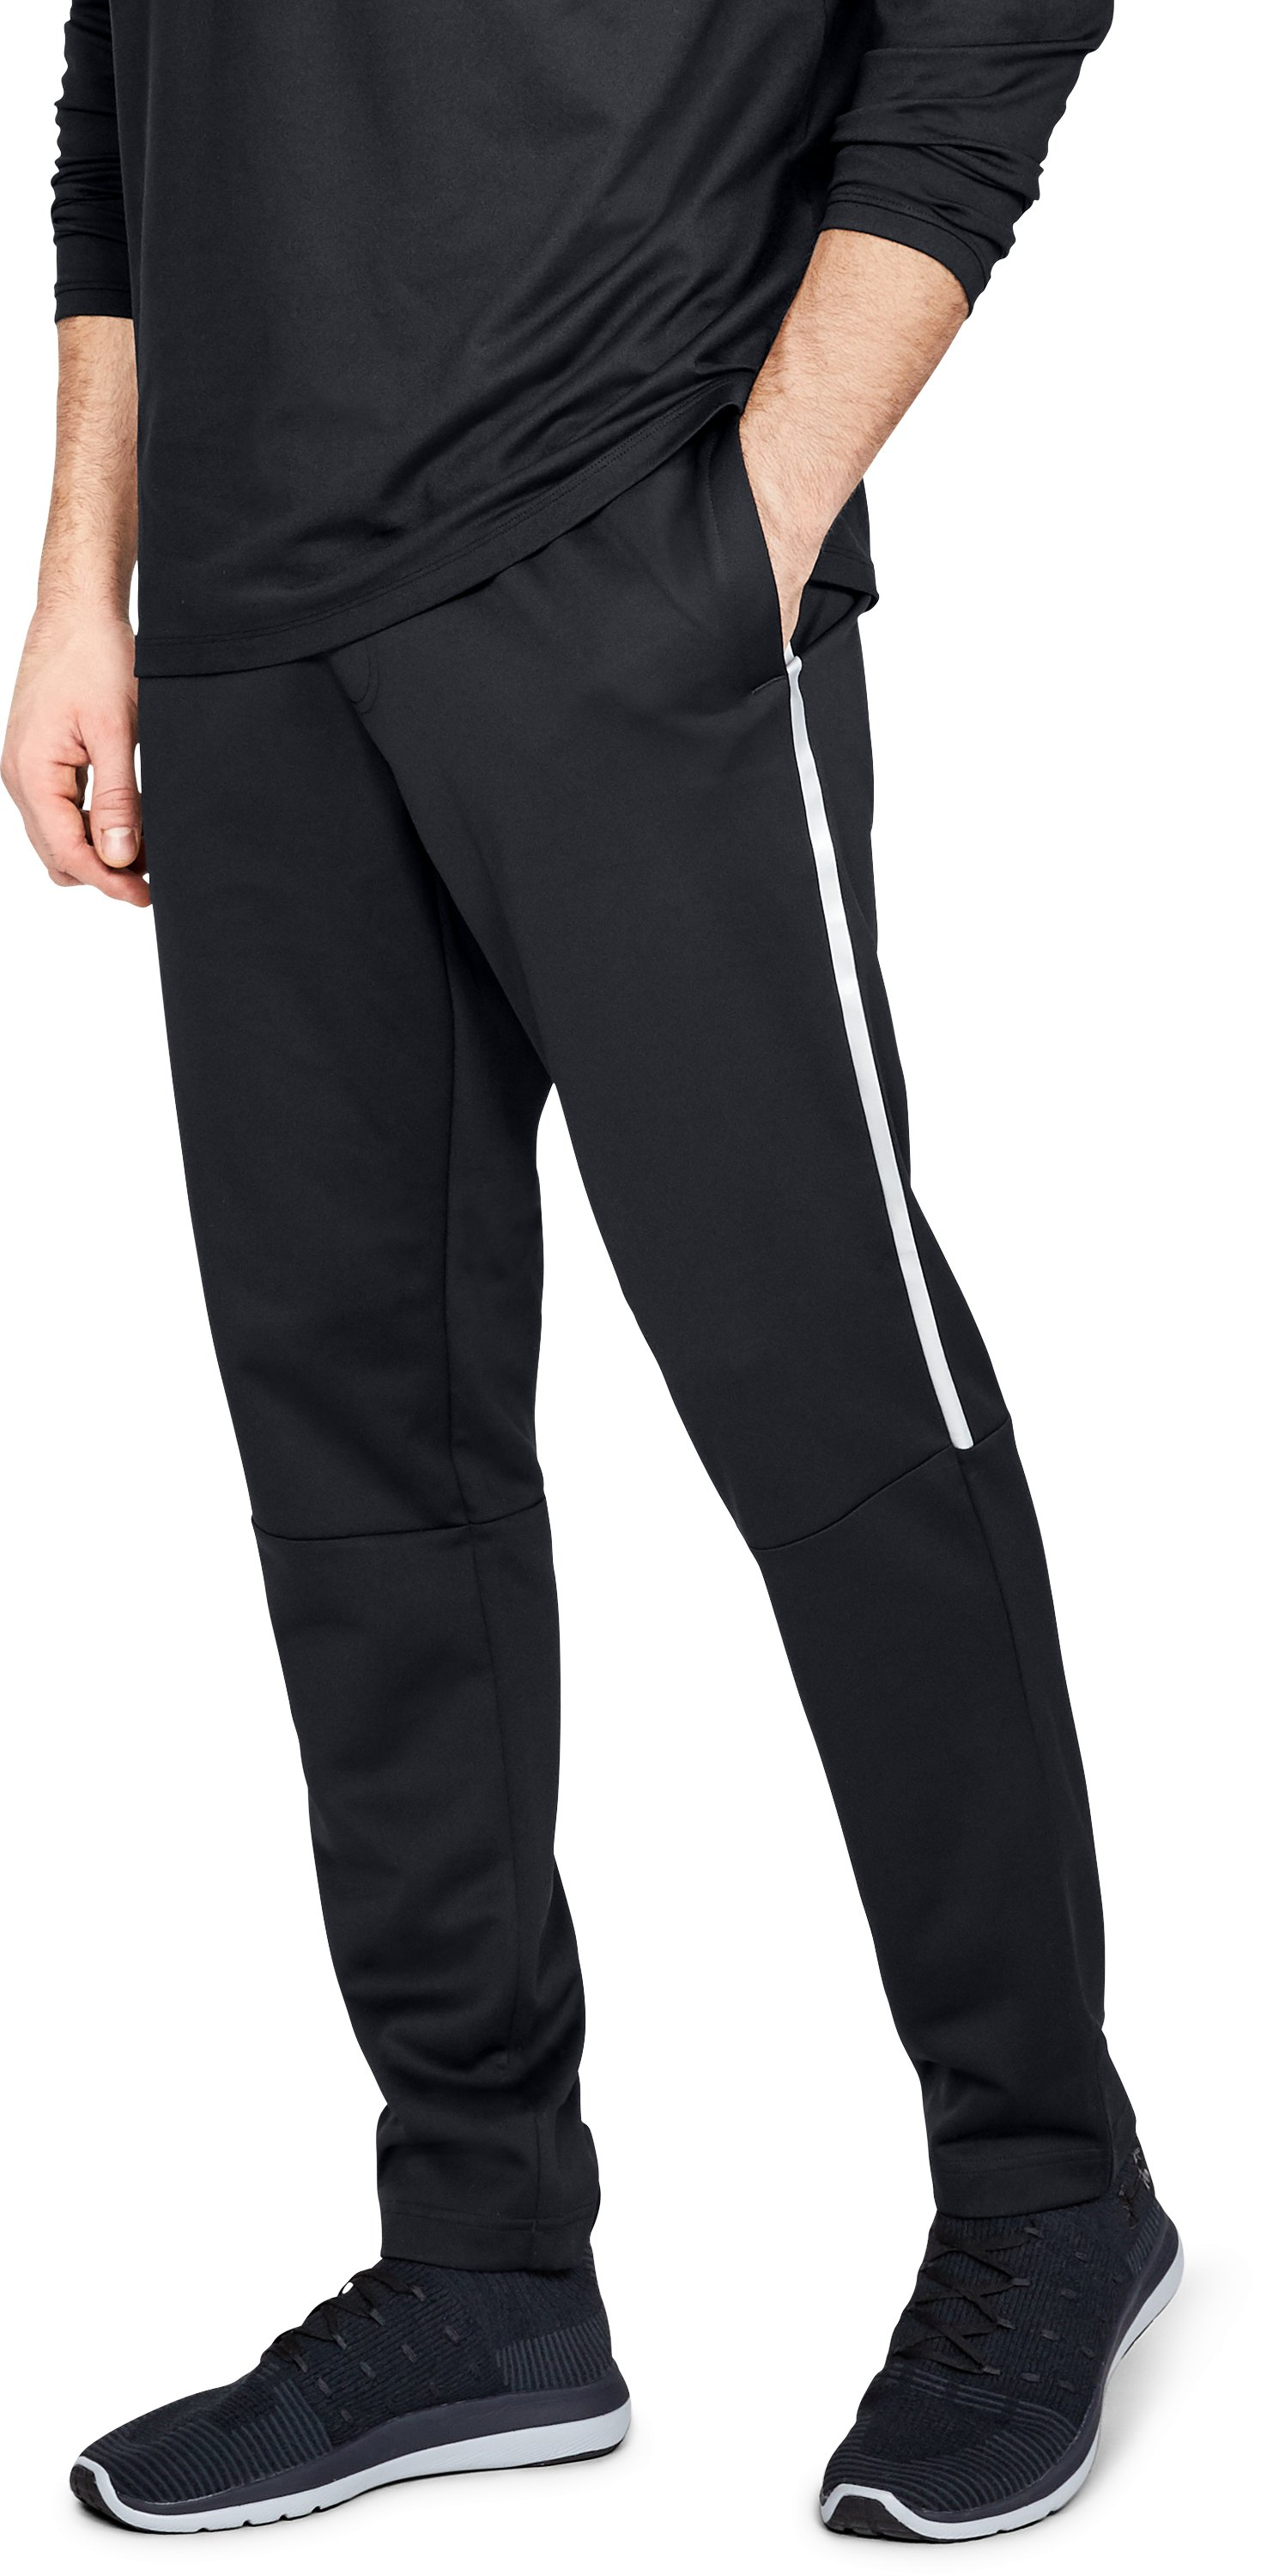 Men's Athlete Recovery Track Suit™ Pants, Black